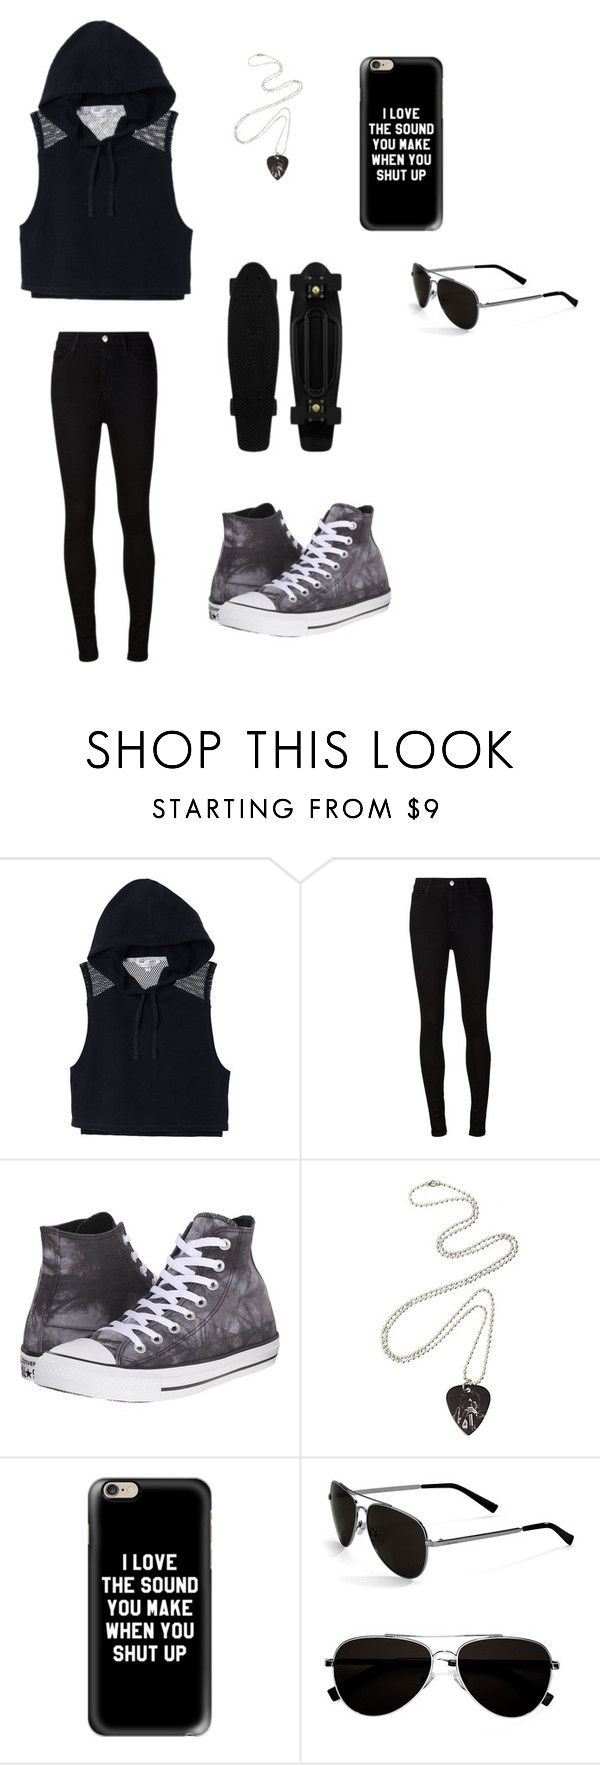 """Untitled #51"" by darksoul7 on Polyvore featuring Victoria's Secret, AG Adriano Goldschmied, Converse, Casetify and Calvin Klein"